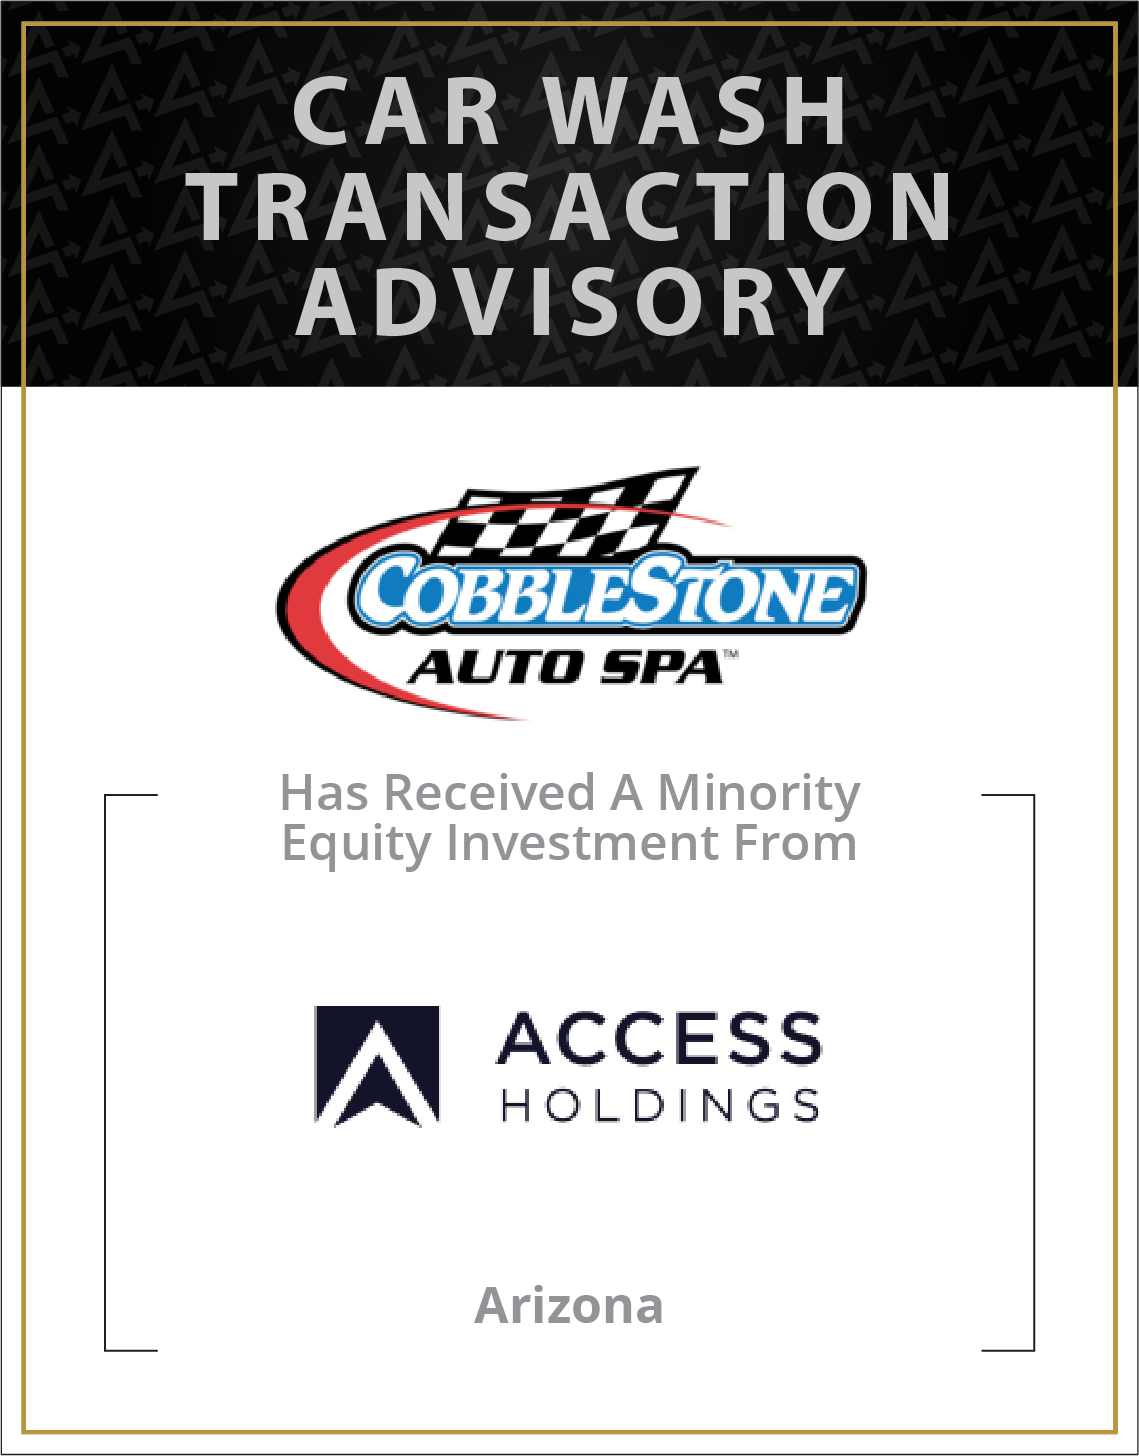 Cobblestone Auto Spa has received a minority equity investment from Access Holdings